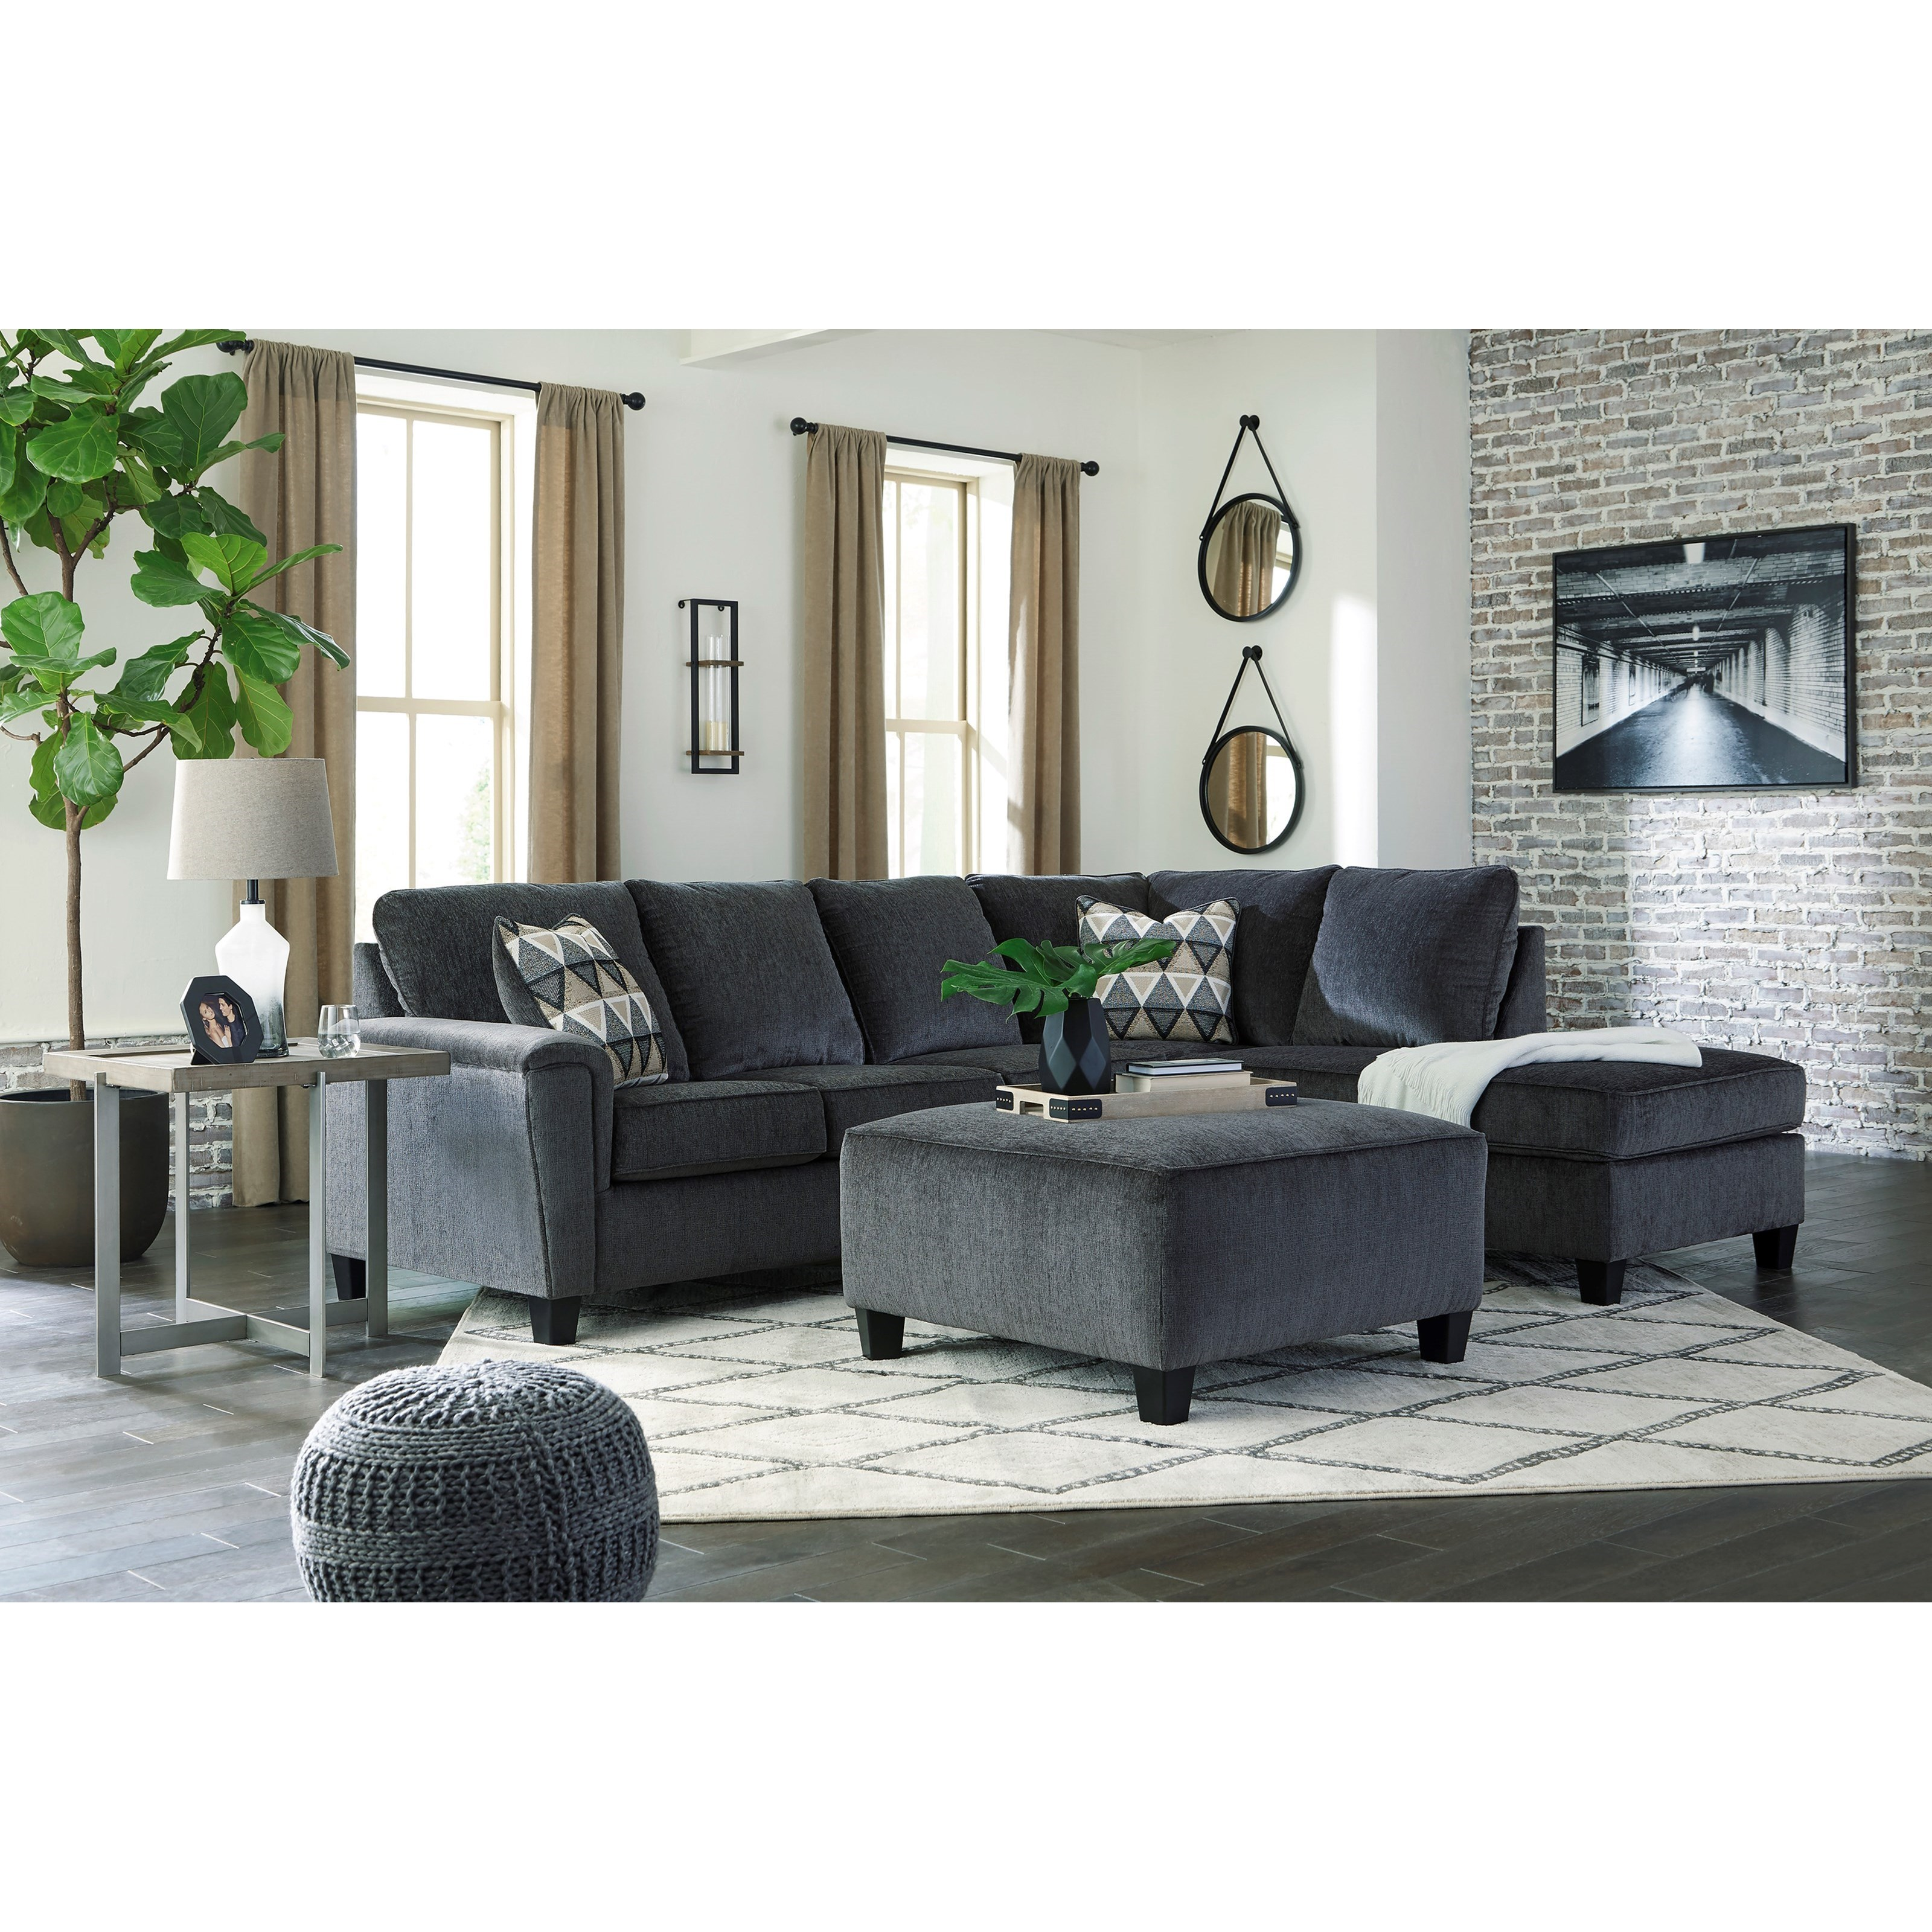 Abinger Living Room Group by Signature Design by Ashley at Northeast Factory Direct